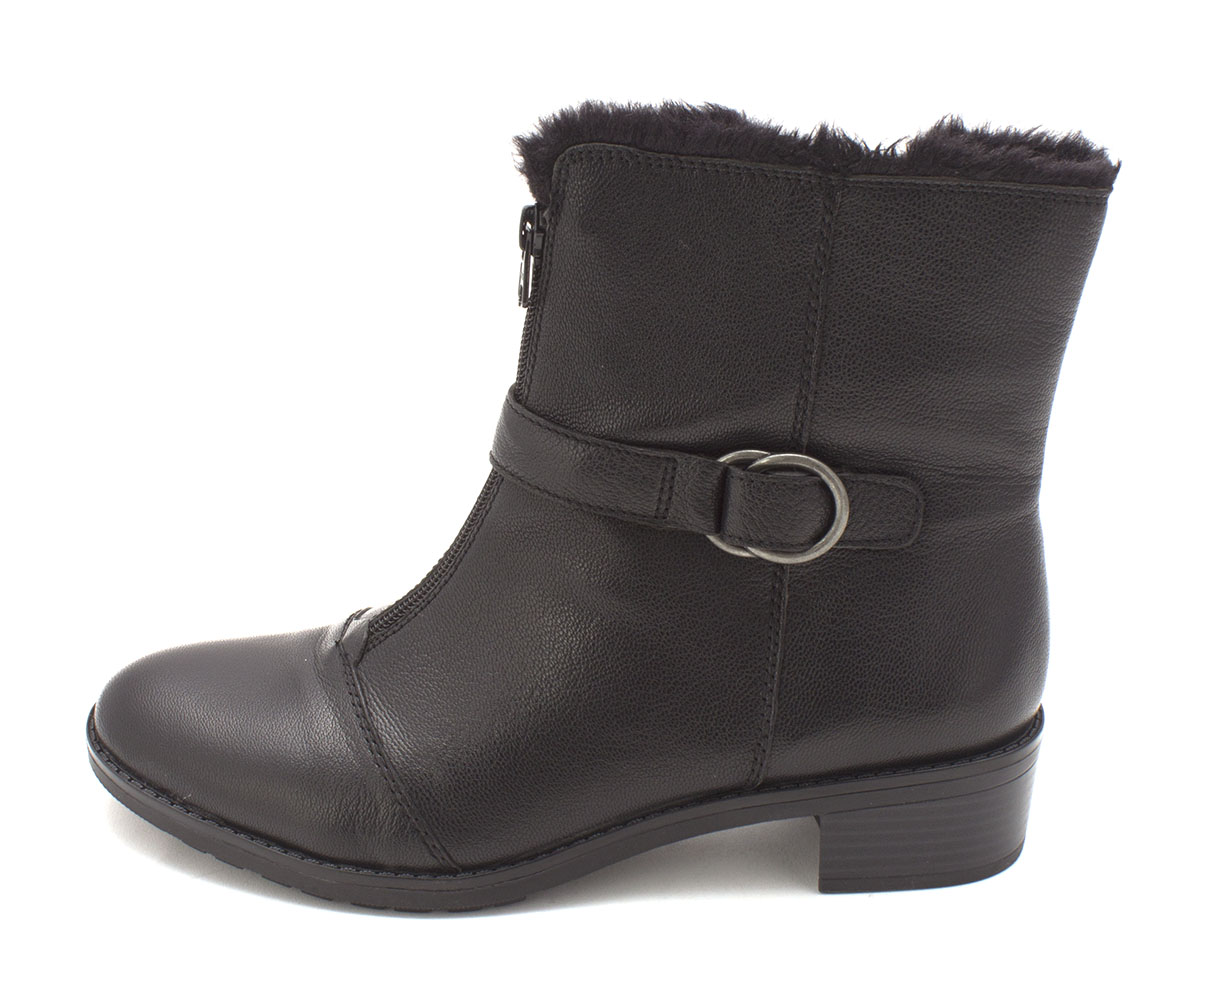 Naturalizer Womens Madera Leather Closed Toe Ankle Fashion Boots by Naturalizer